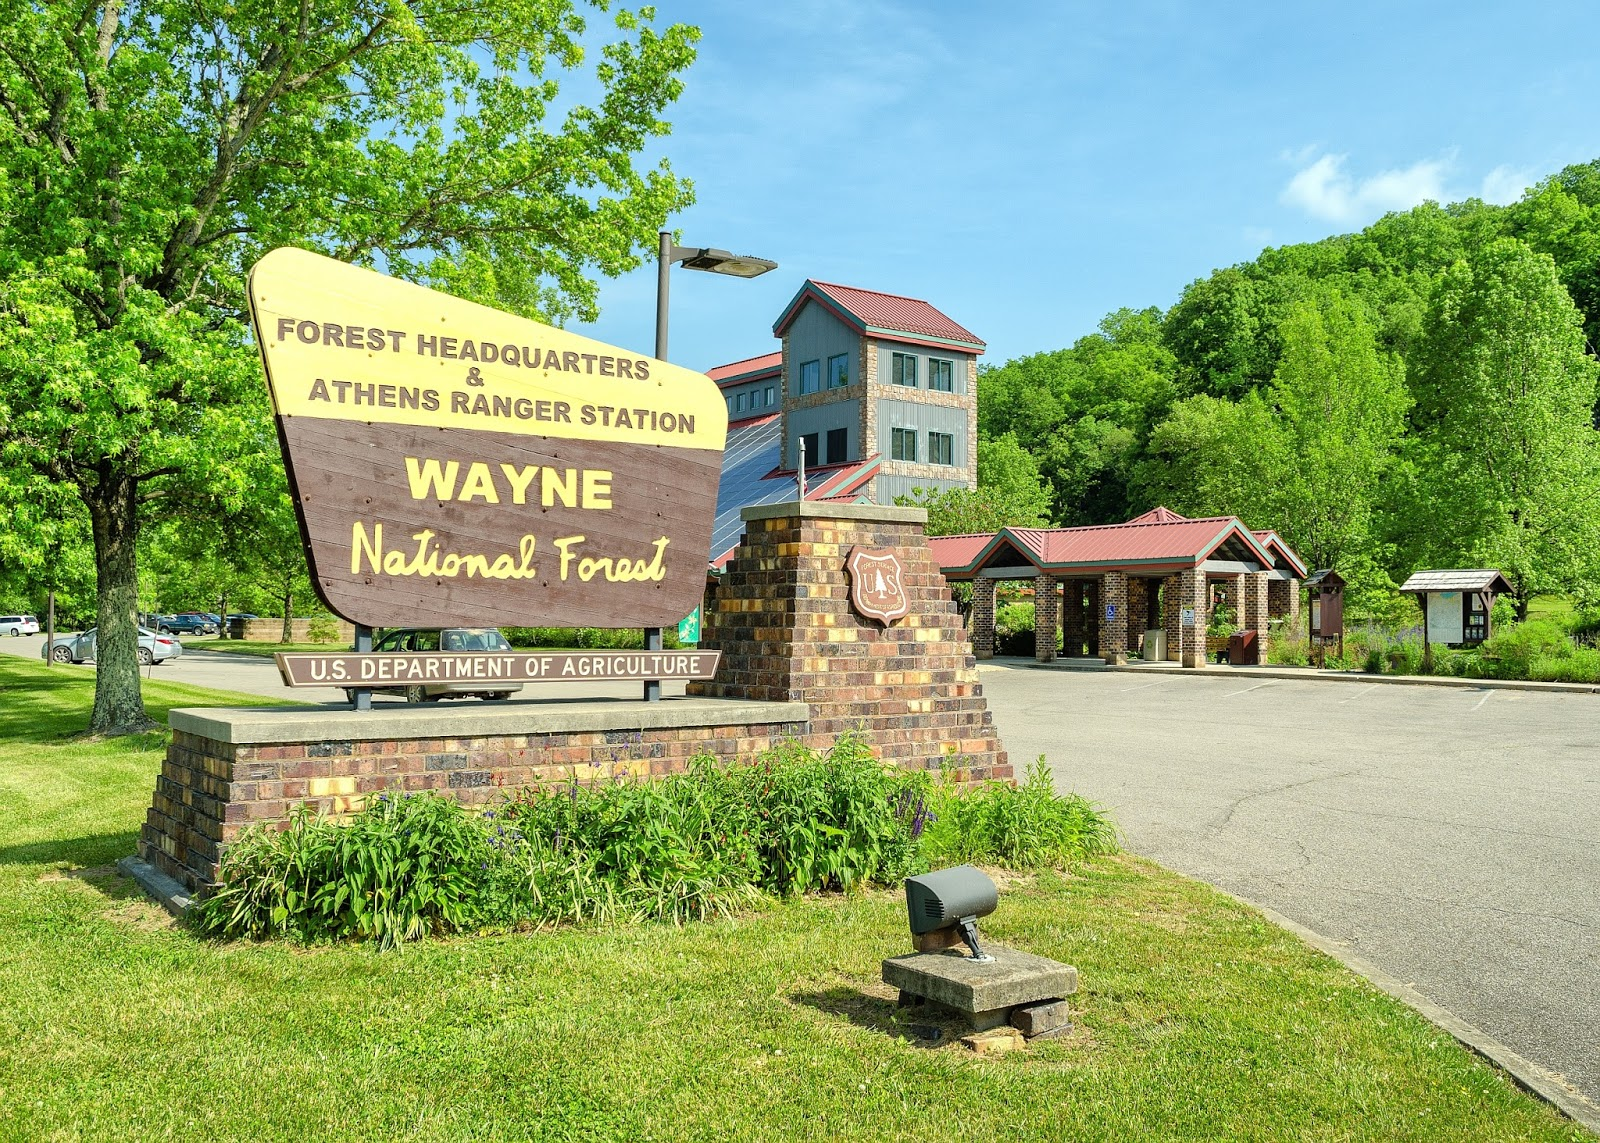 Wayne National Forest Headquarters